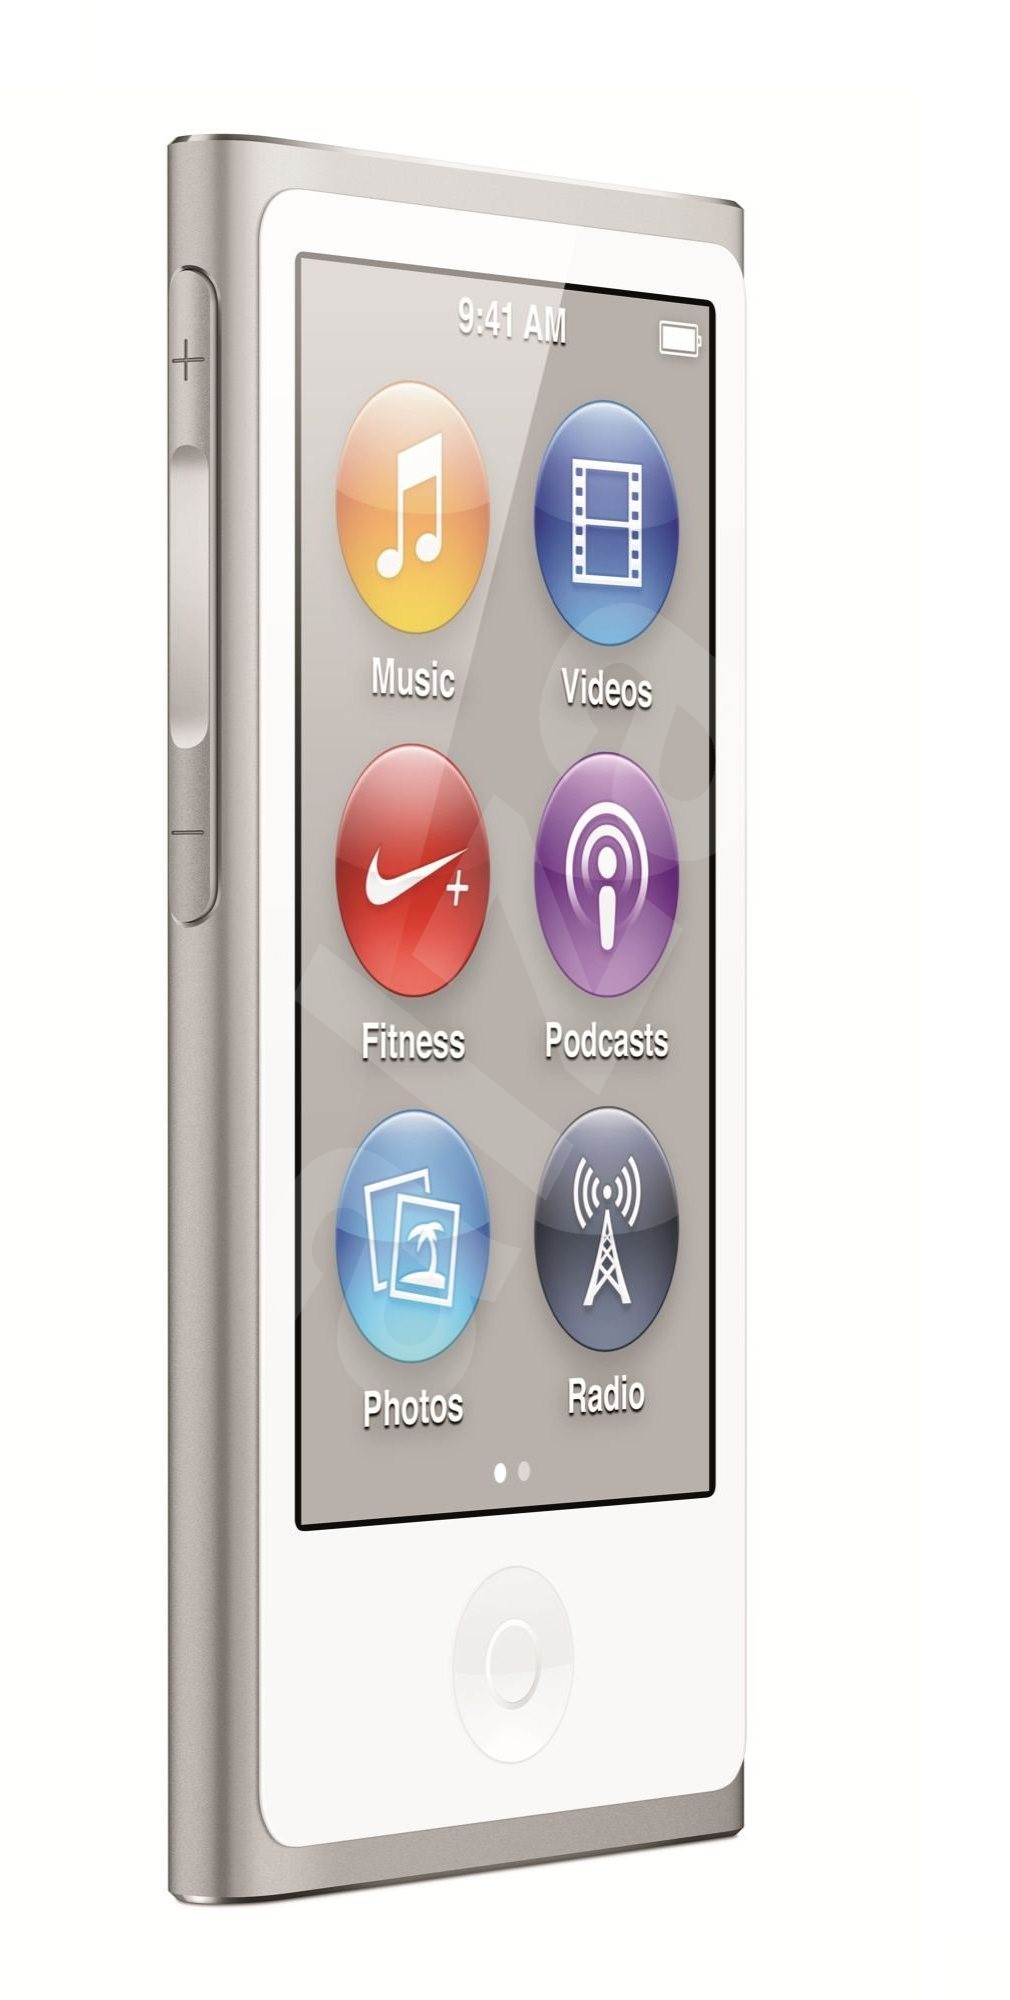 apple ipod nano 16gb silver 7th gen mp3 player. Black Bedroom Furniture Sets. Home Design Ideas